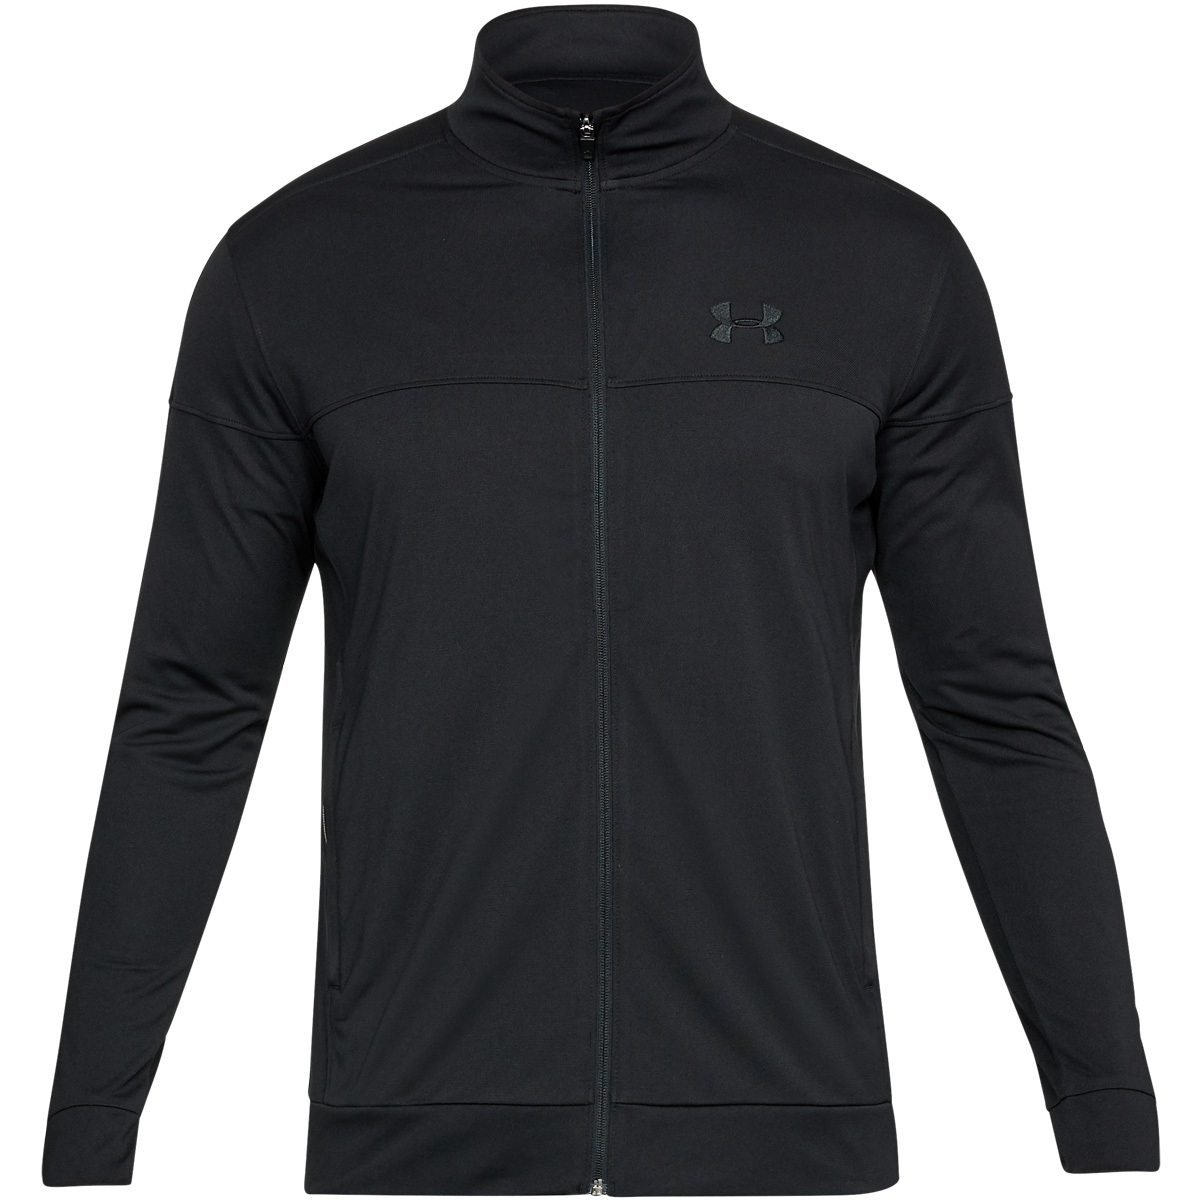 Under-Armour-Mens-2019-Sportstyle-Pique-Sports-Training-Full-Zip-Track-Jacket thumbnail 9